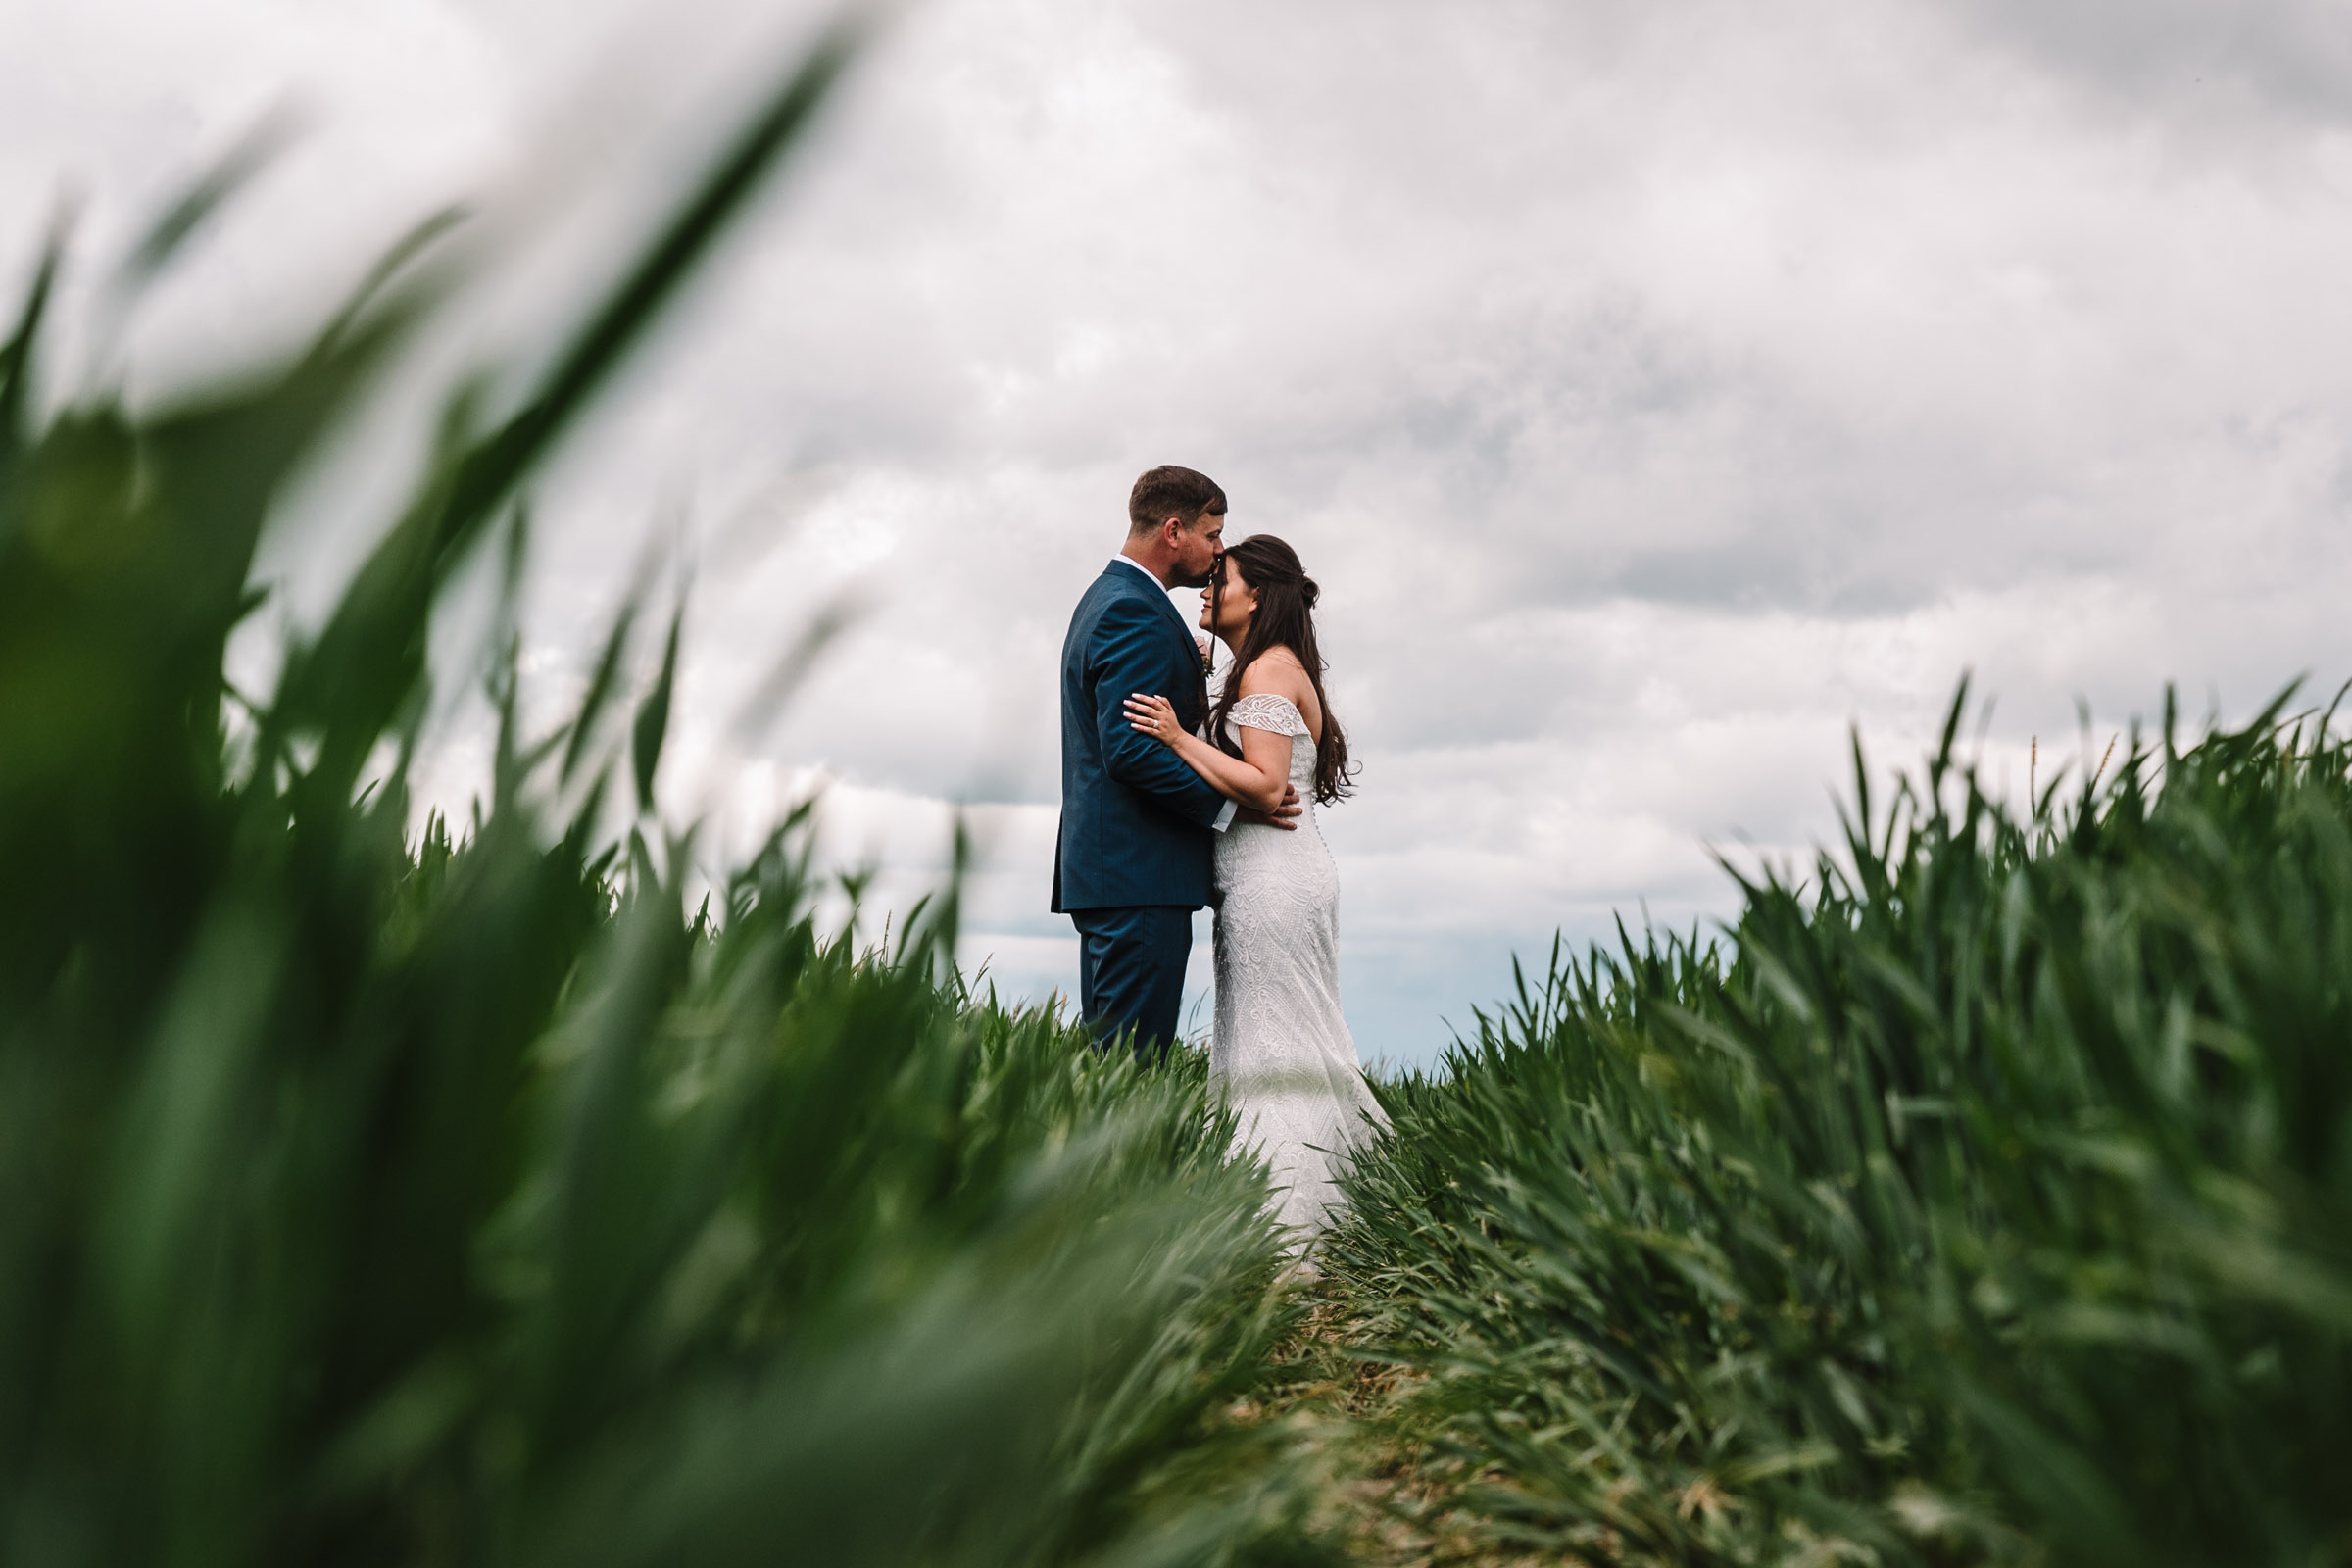 Bride and groom standing together in a field, royal arms hotel wedding